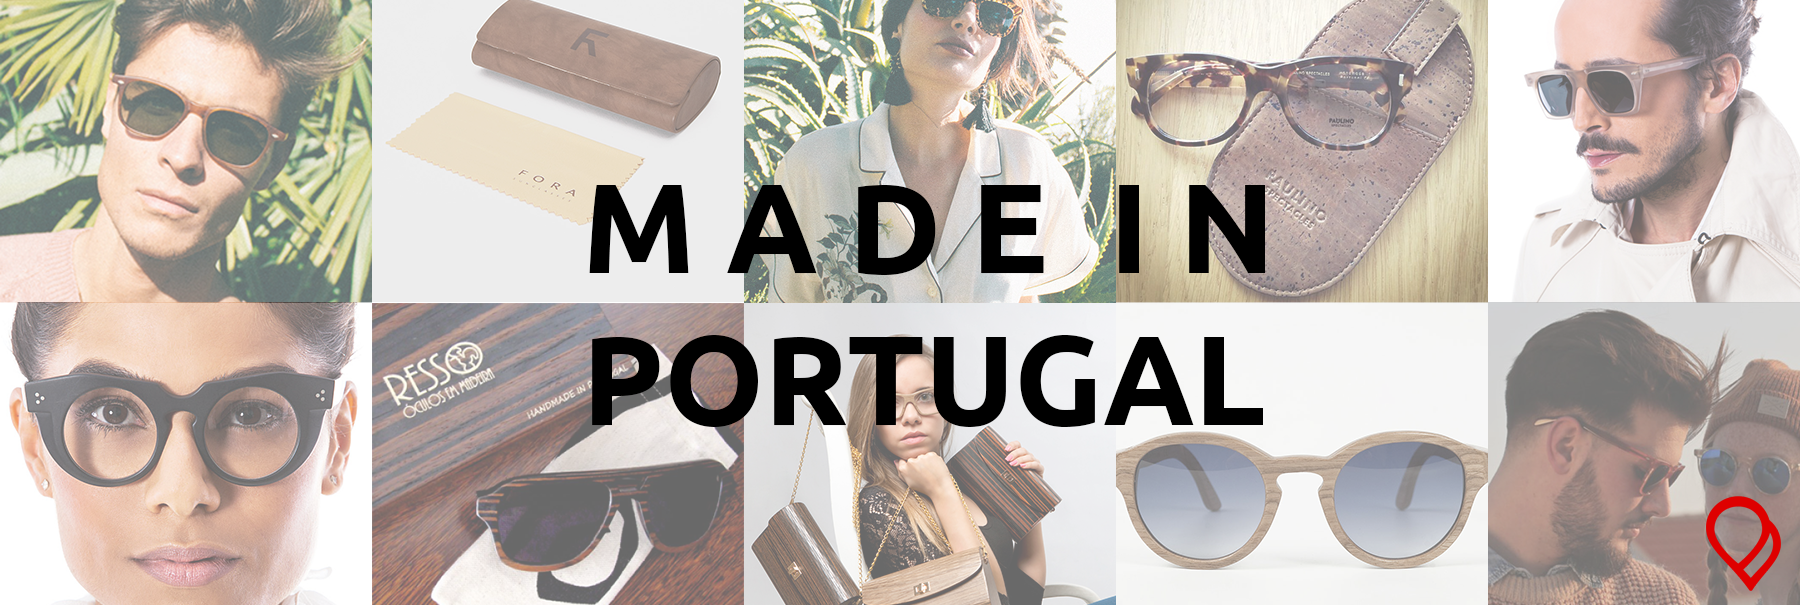 "Óculos ""Made in Portugal"""